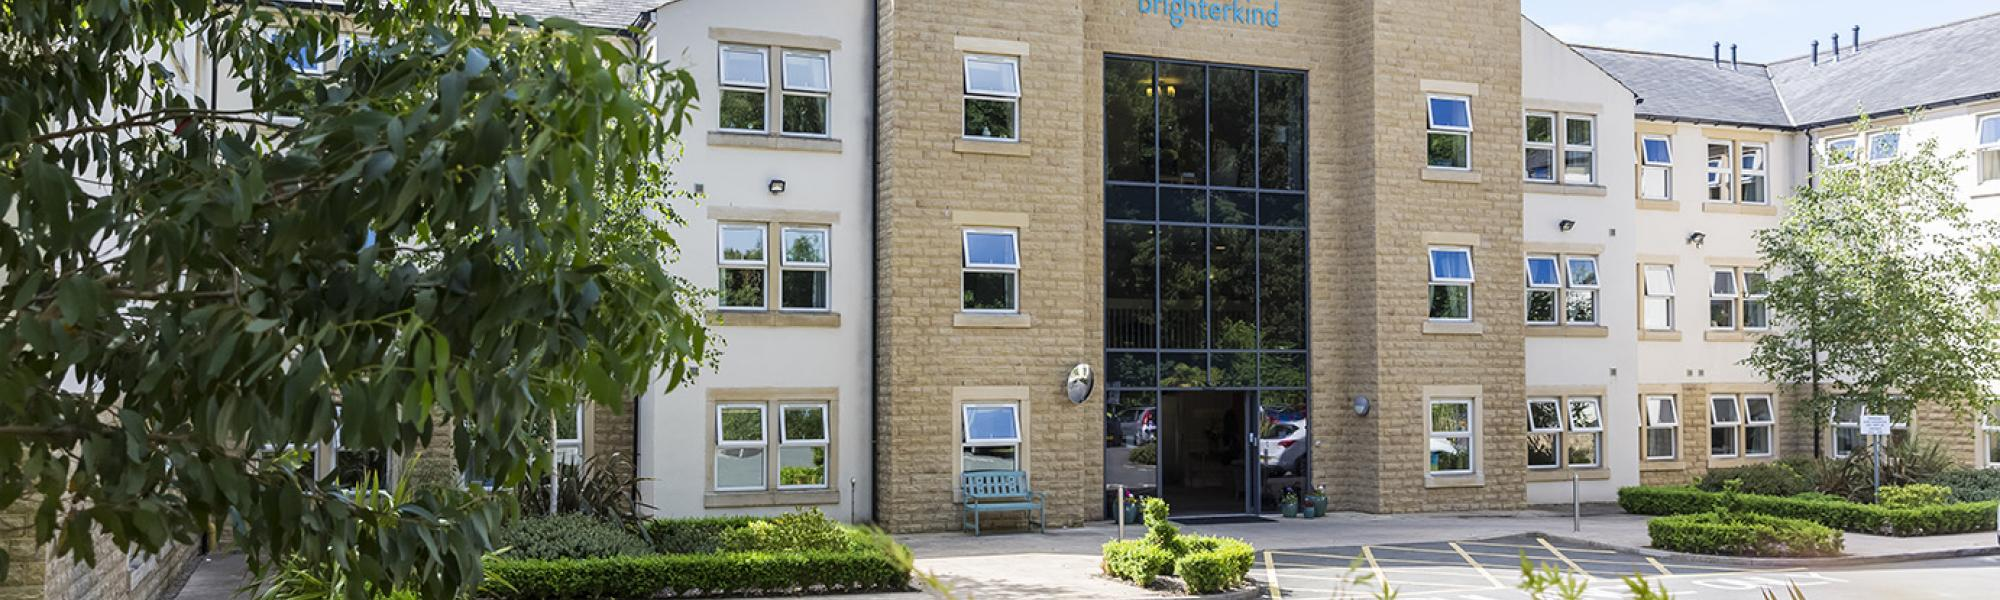 brighterkind Cookridge Court Care Home in West Yorkshire